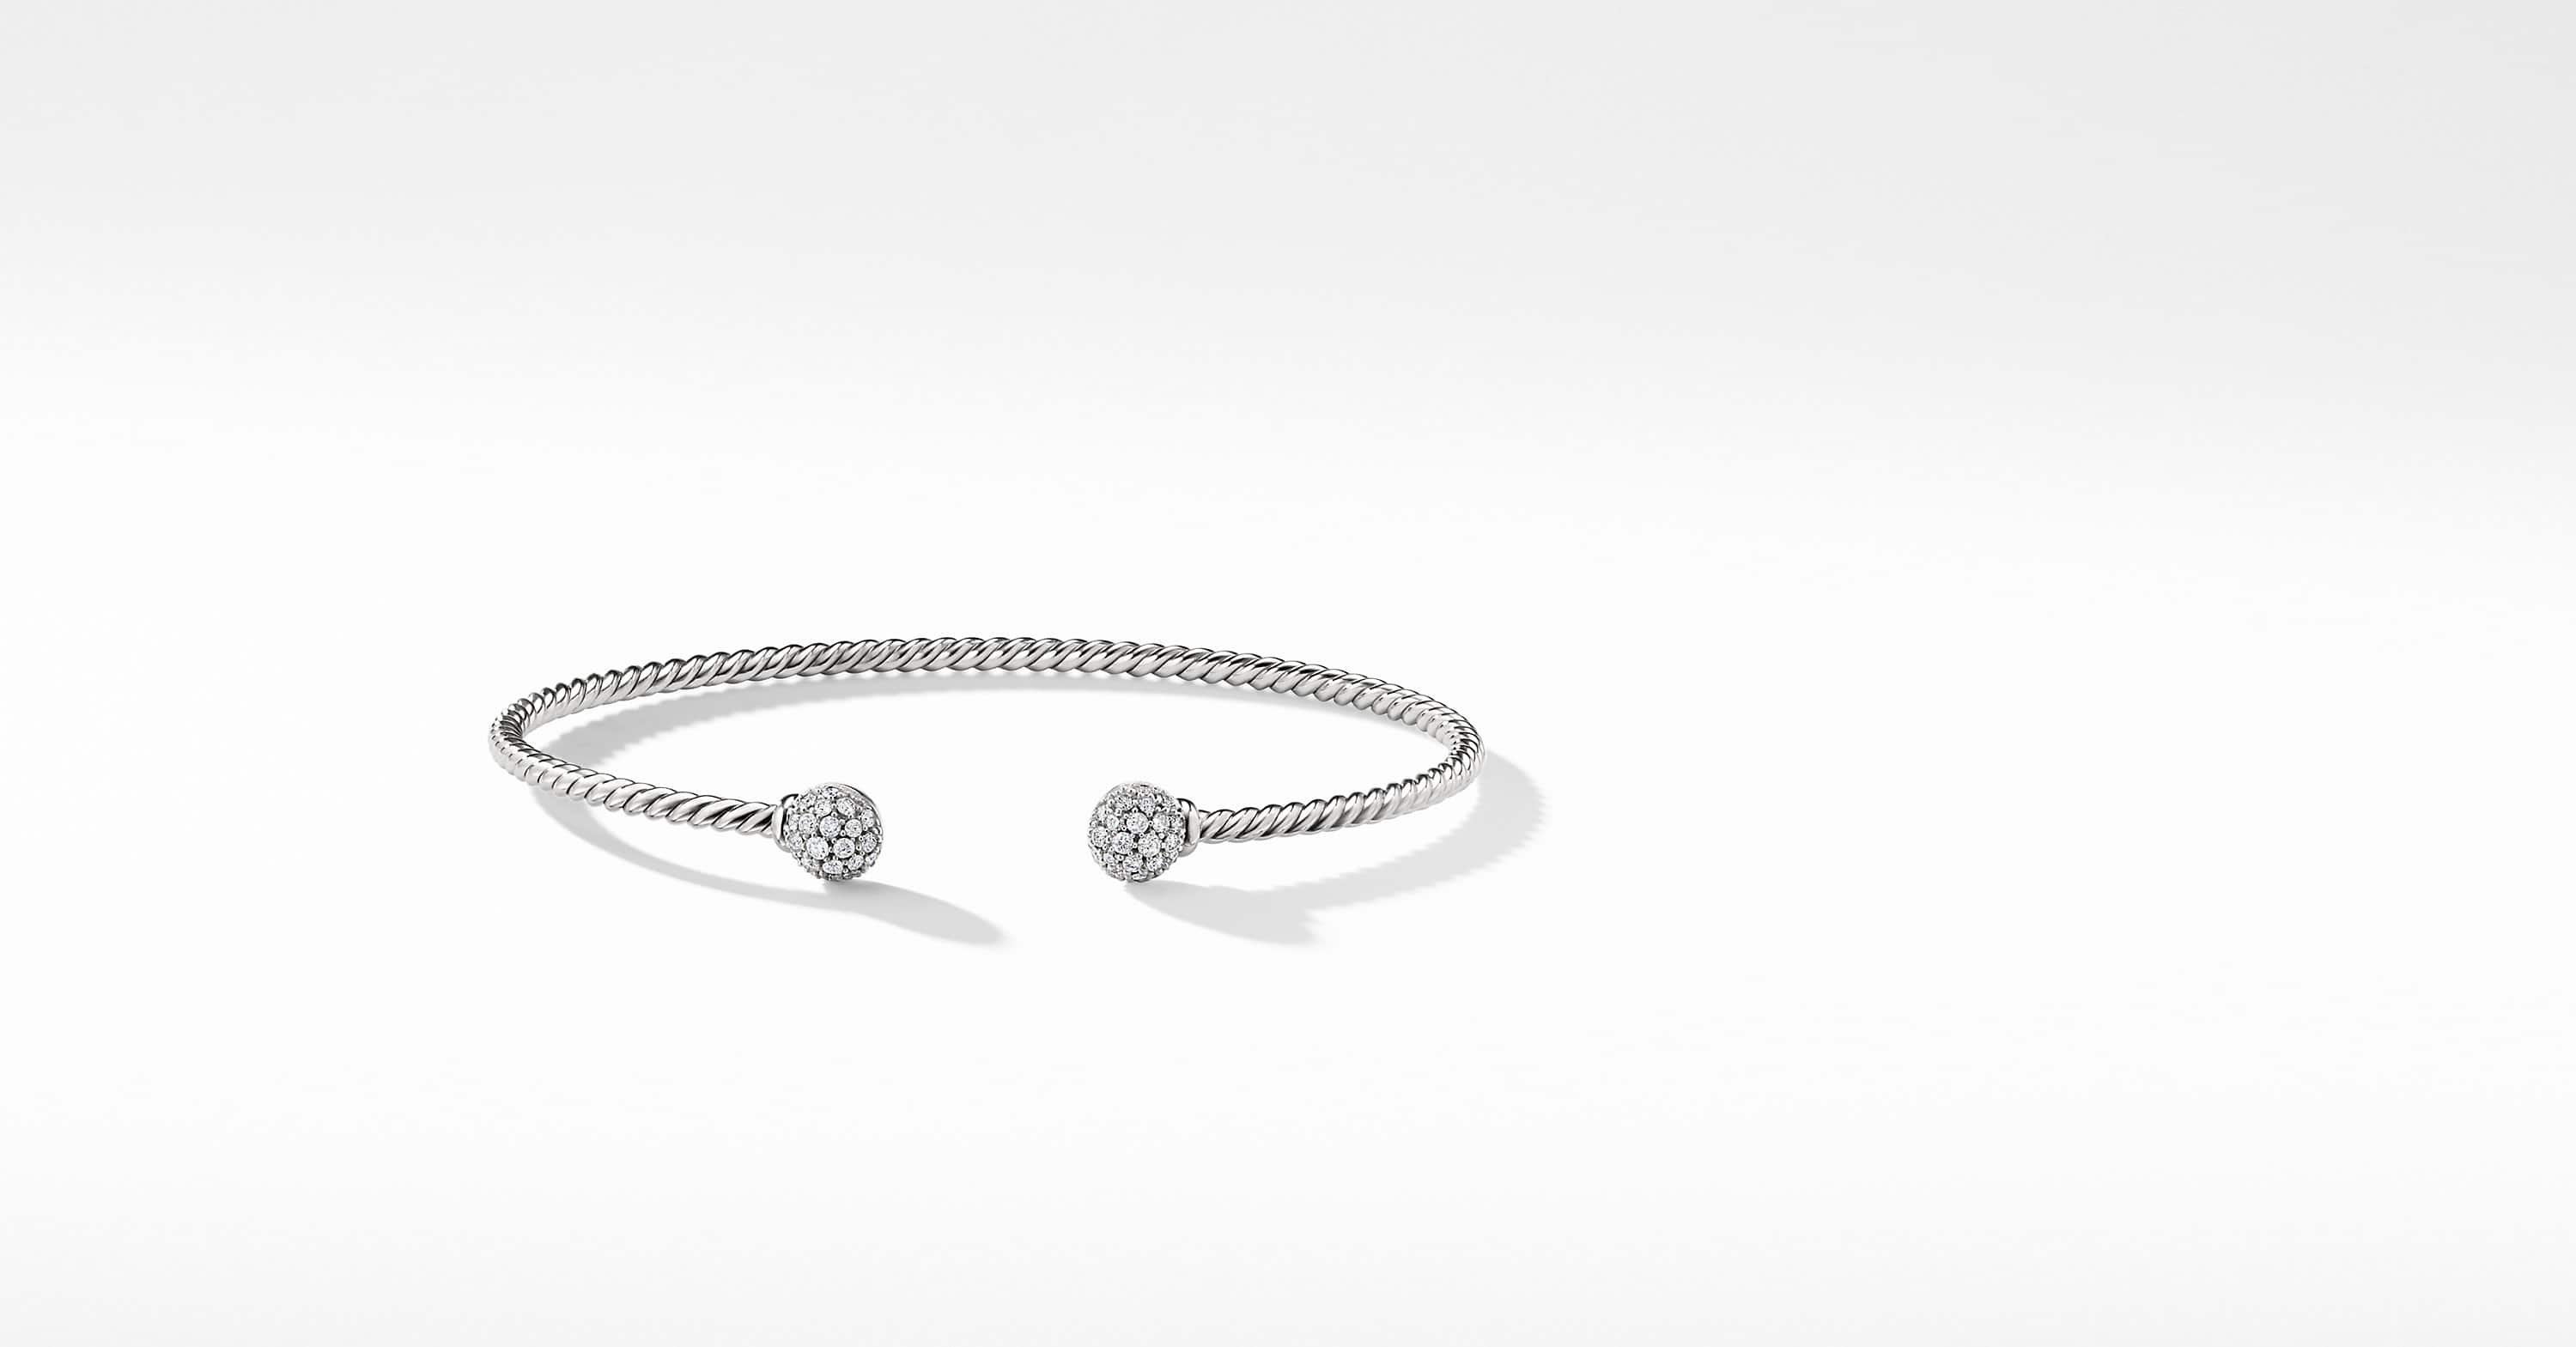 Petite Solari Bead Bracelet with Diamonds in 18K White Gold